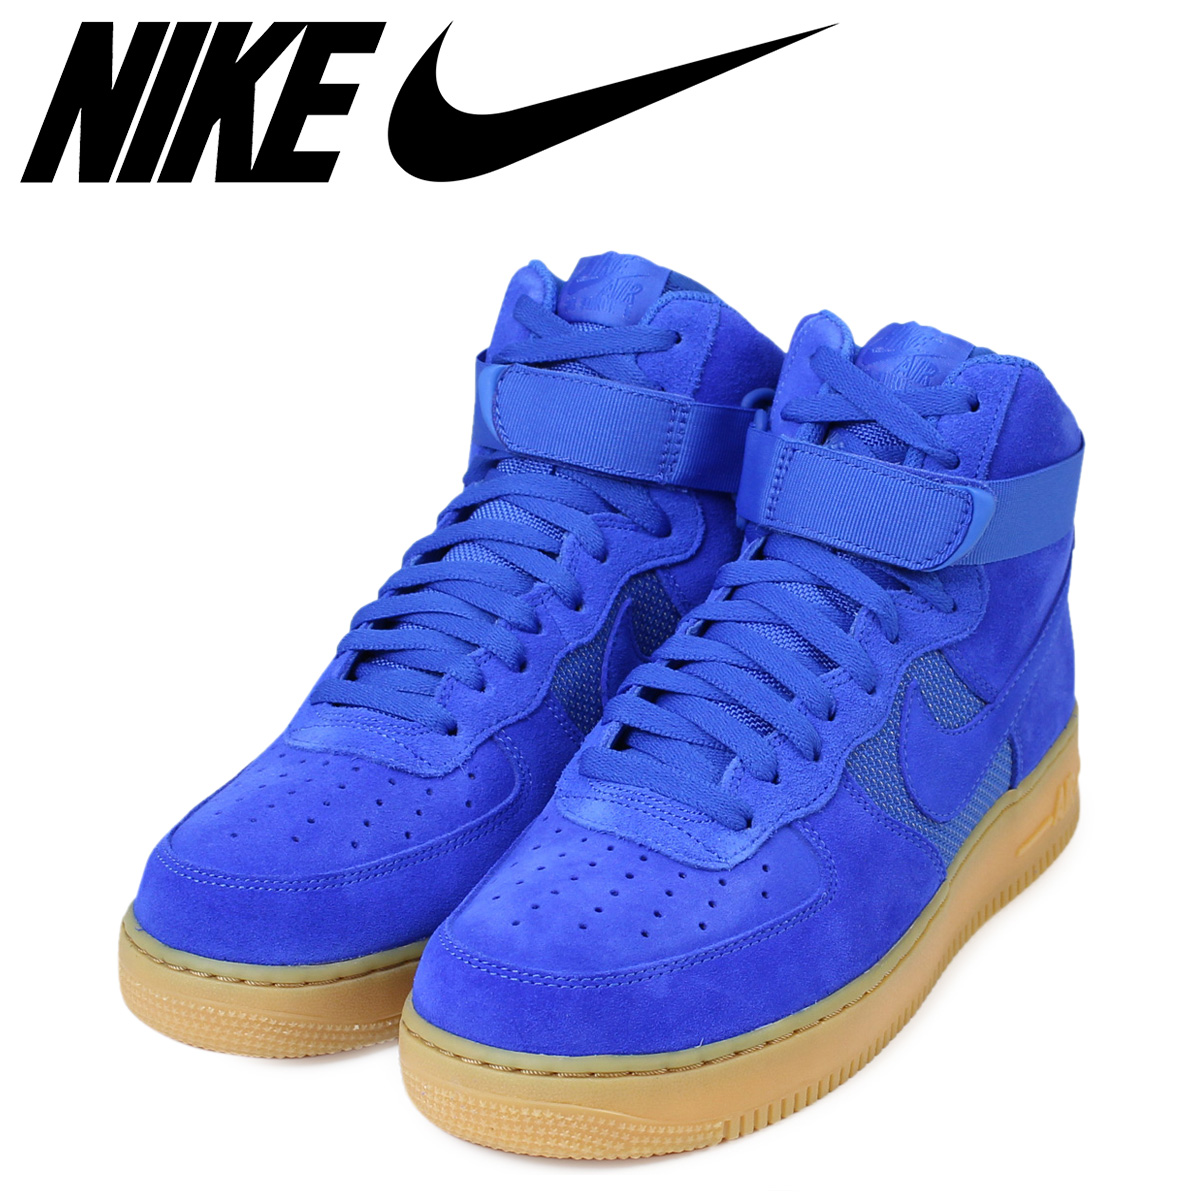 Latest information about Nike Air Force 1 High Mens Blue